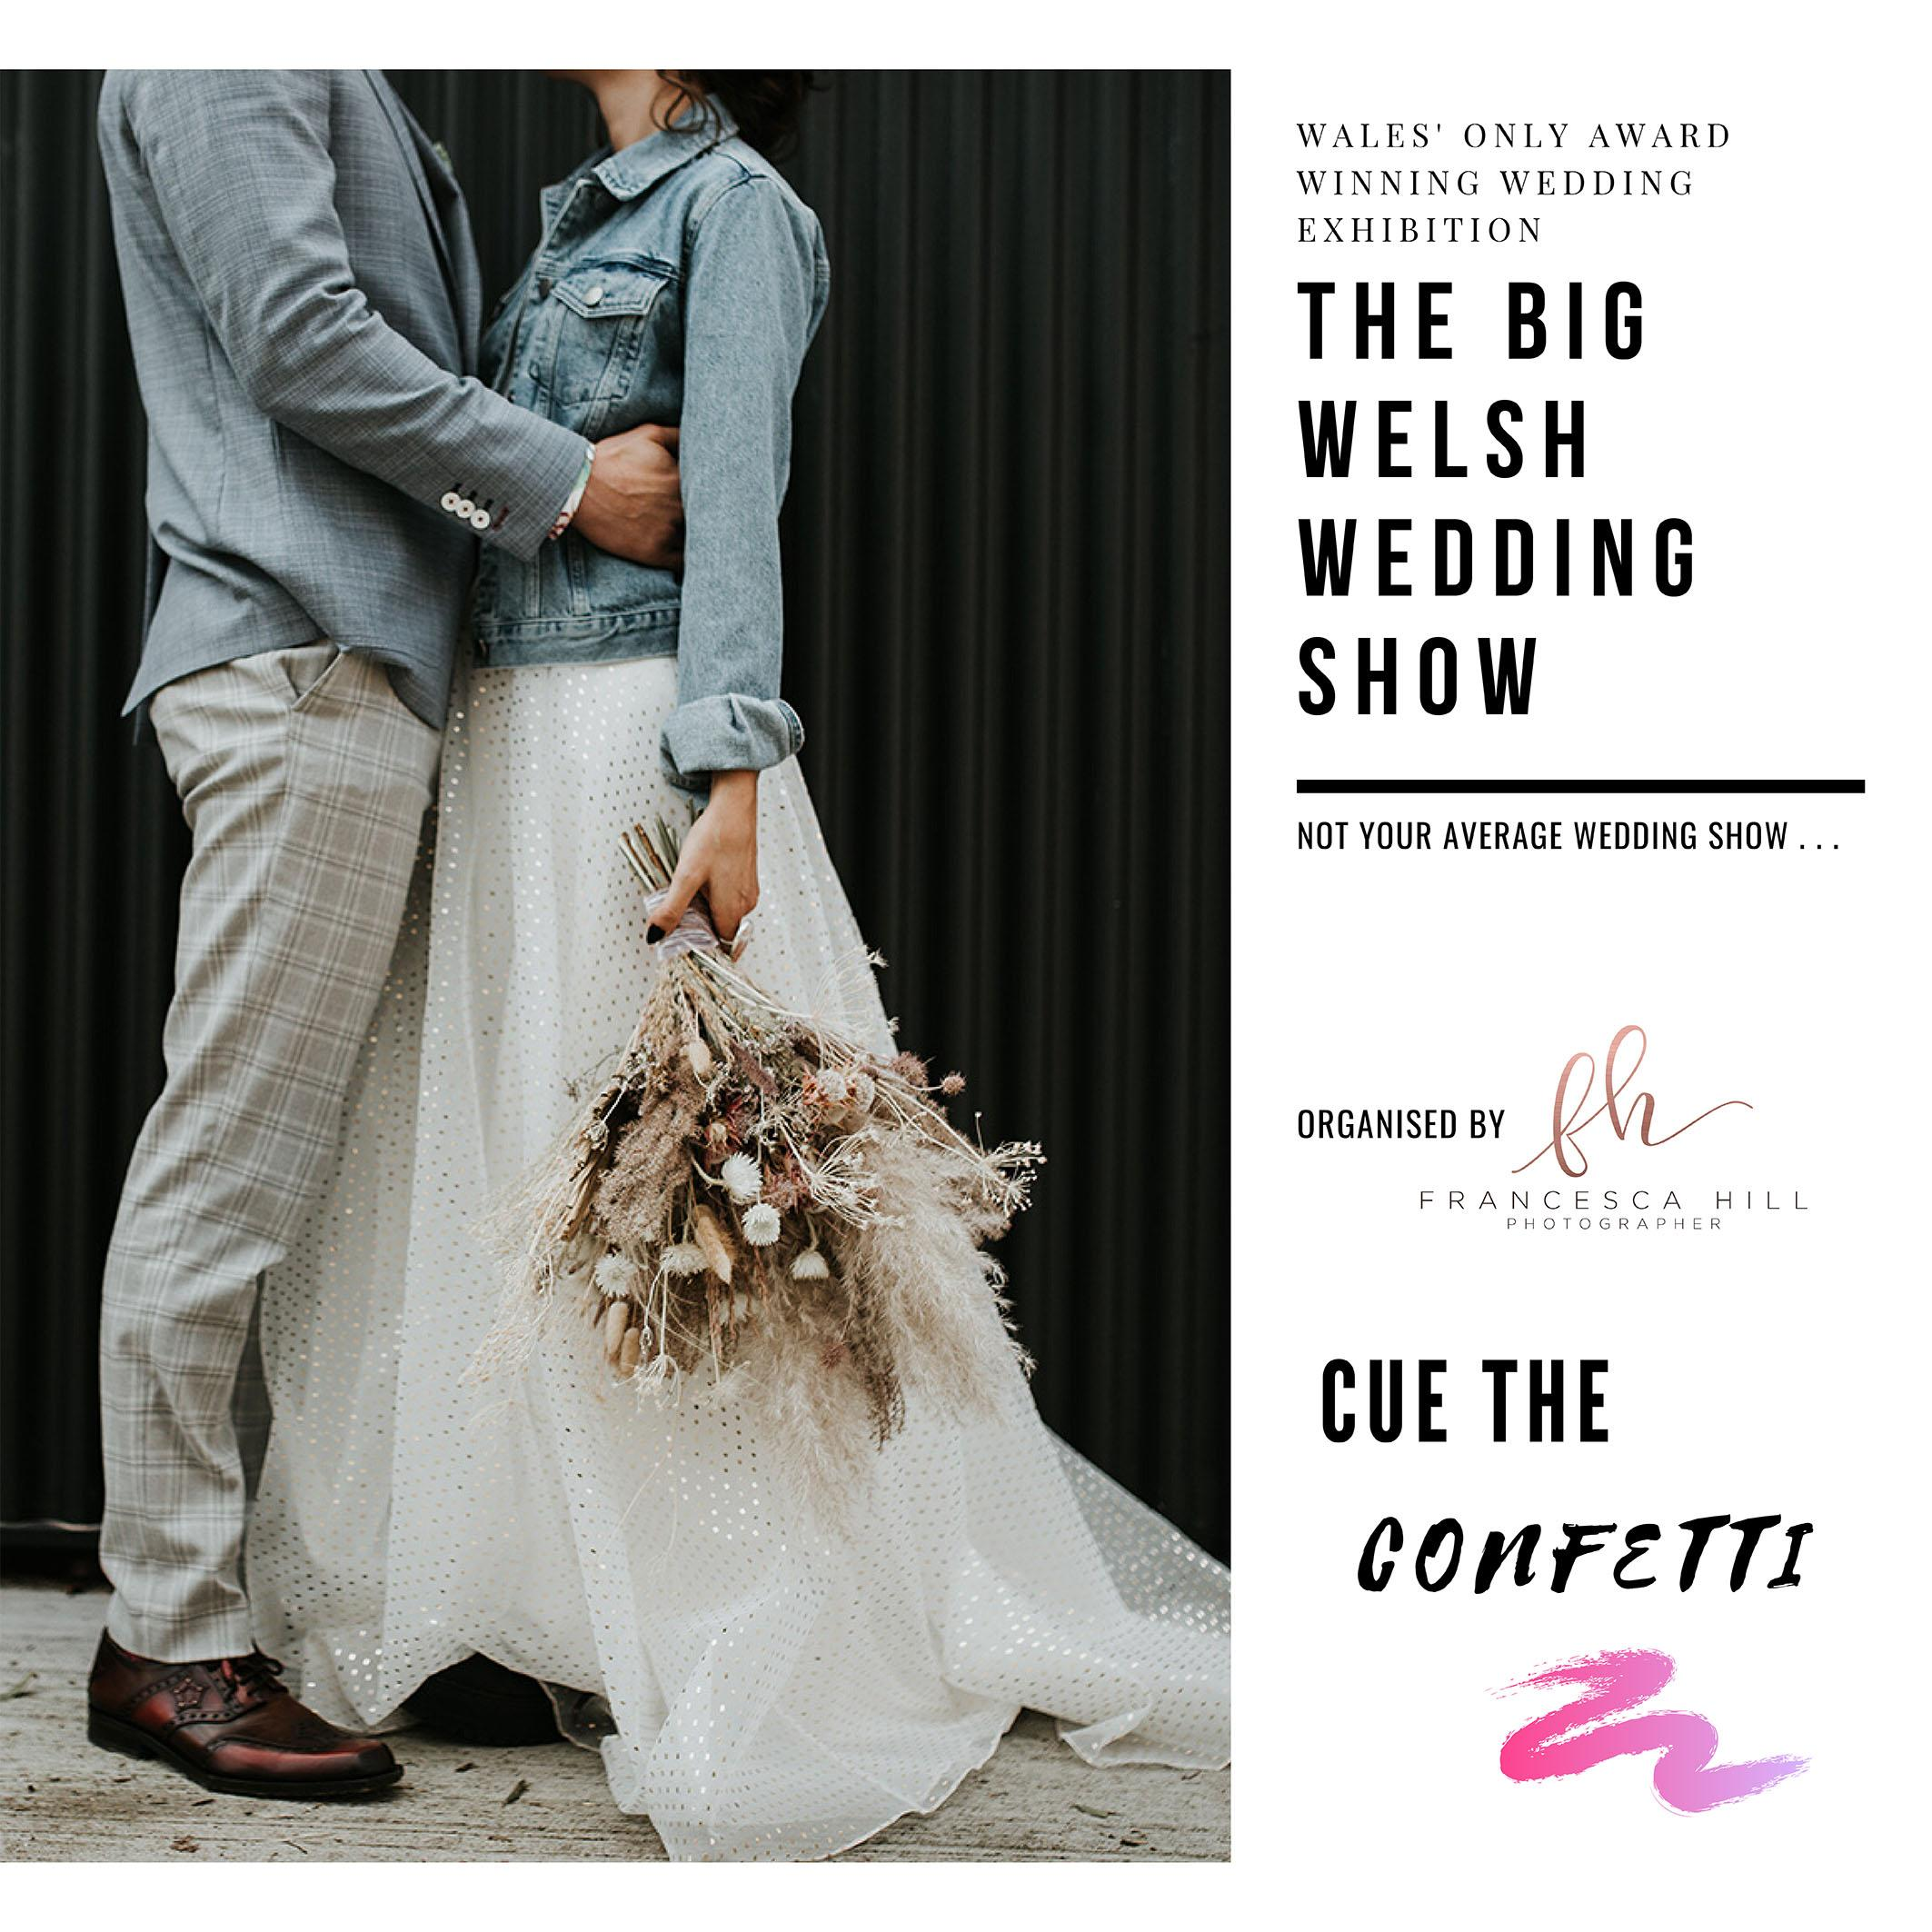 Wales only award winning wedding exhibition